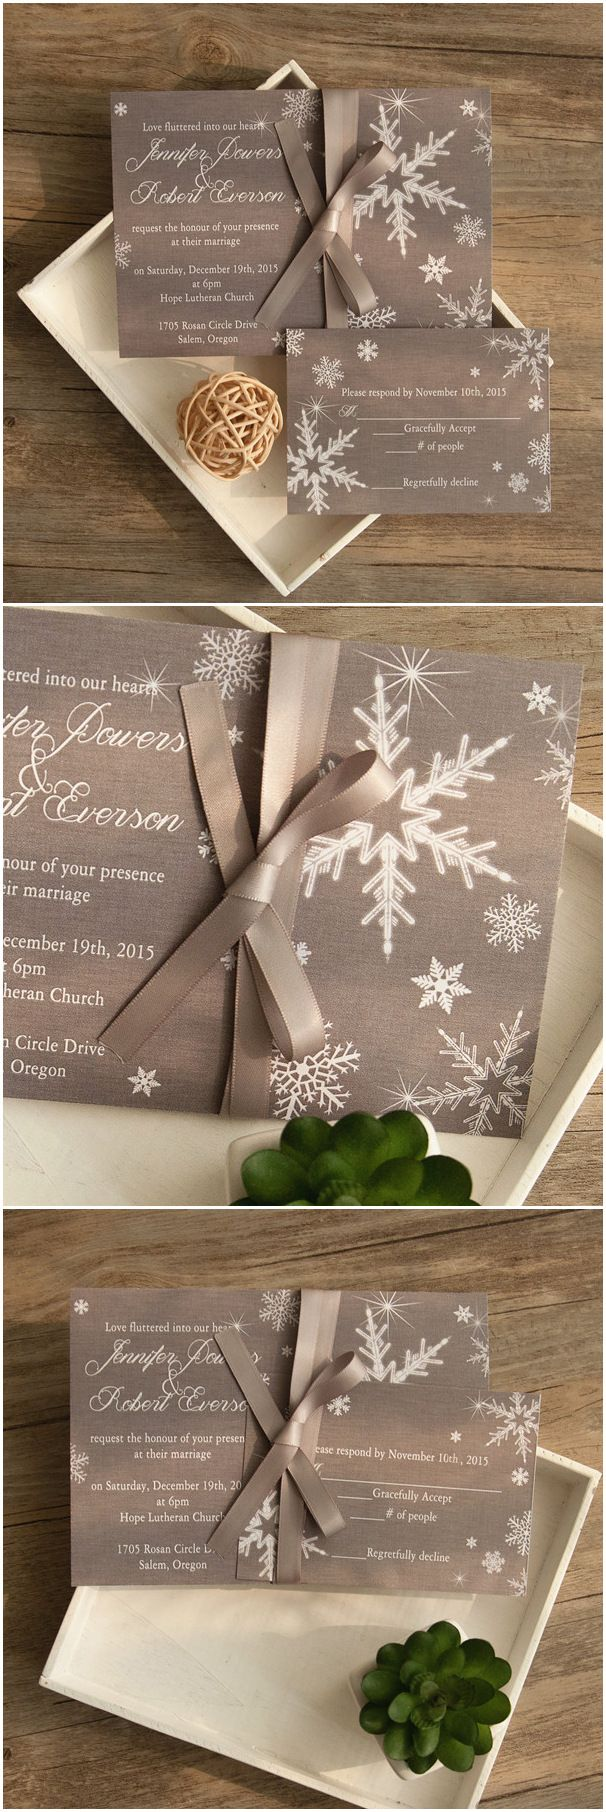 elegant snowflake inspired gray winter wedding invitations with ribbon tied